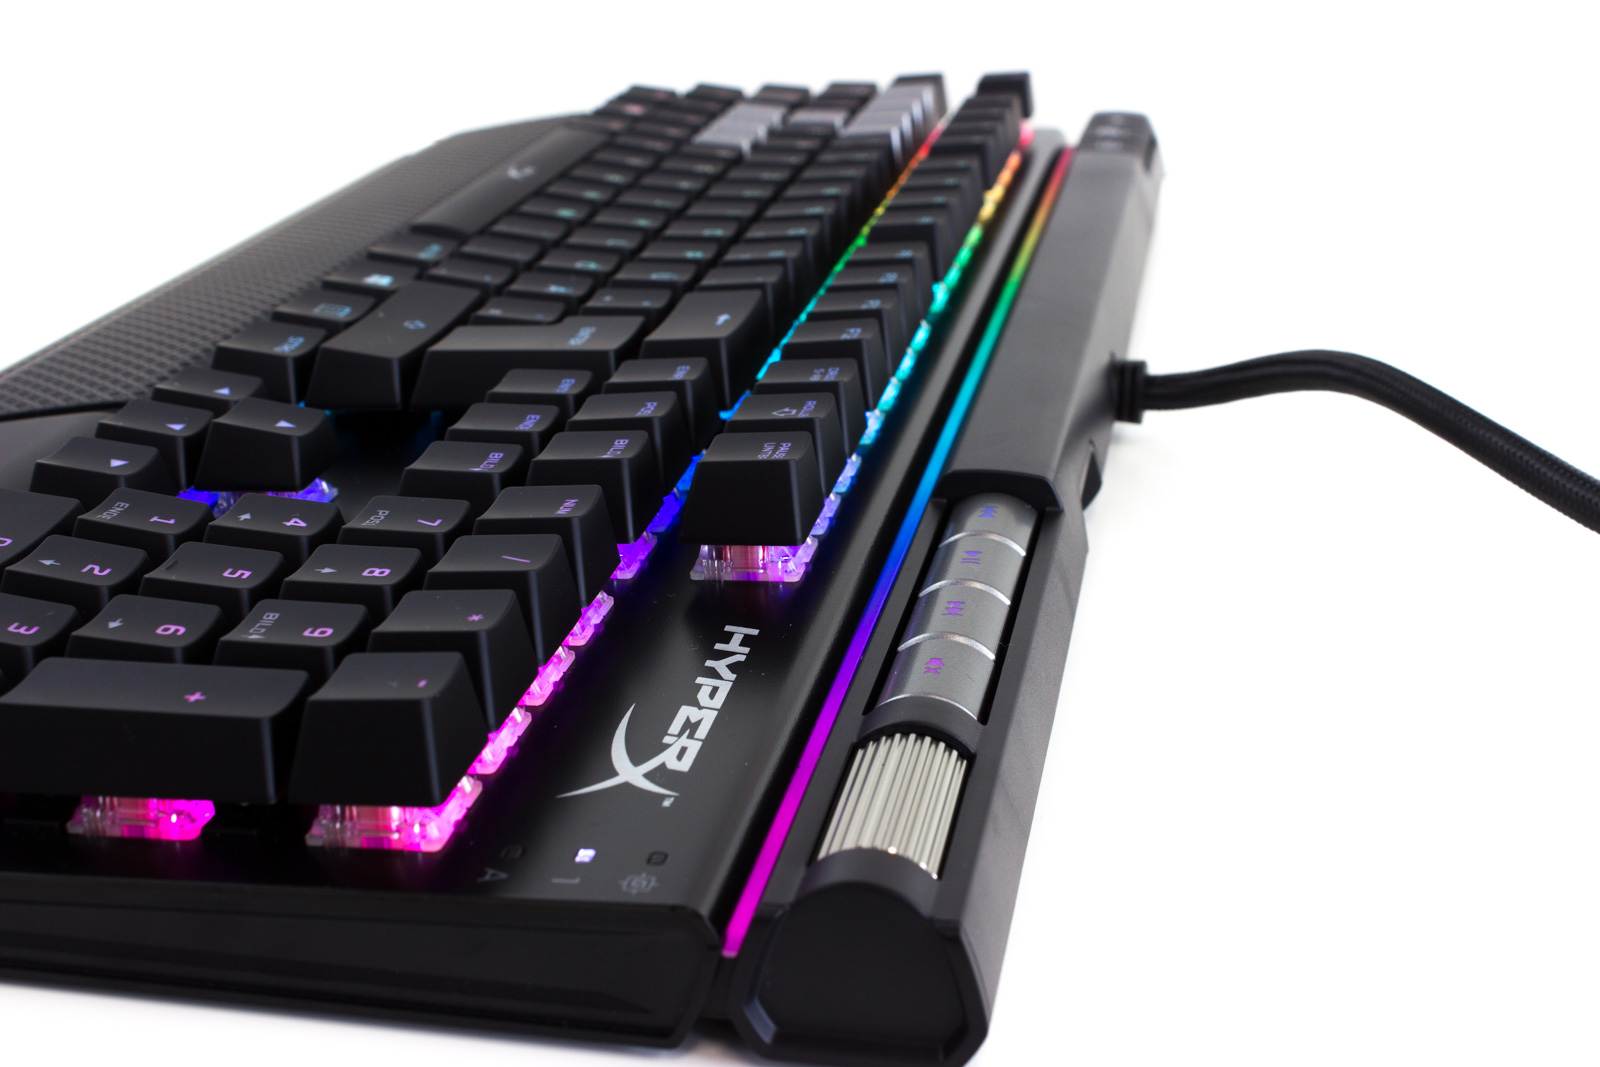 HyperX-Alloy-Elite-LEDS